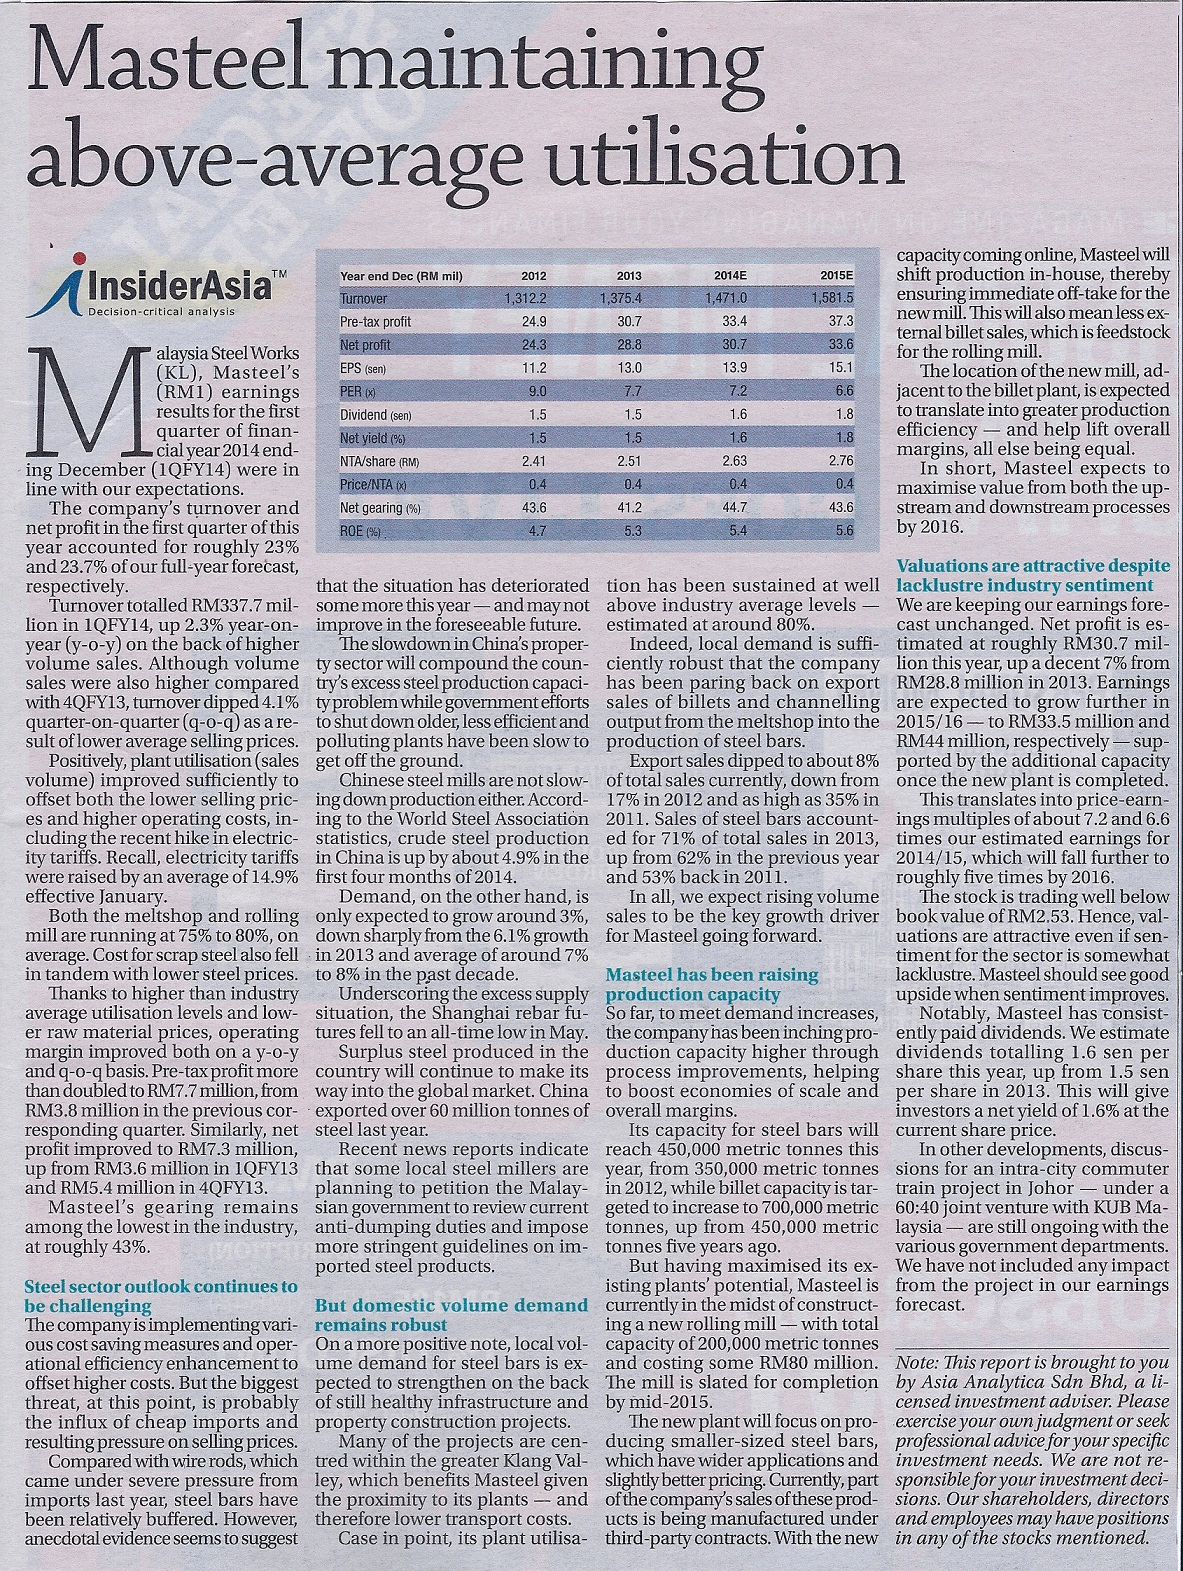 Masteel maintaining above-average utilisation